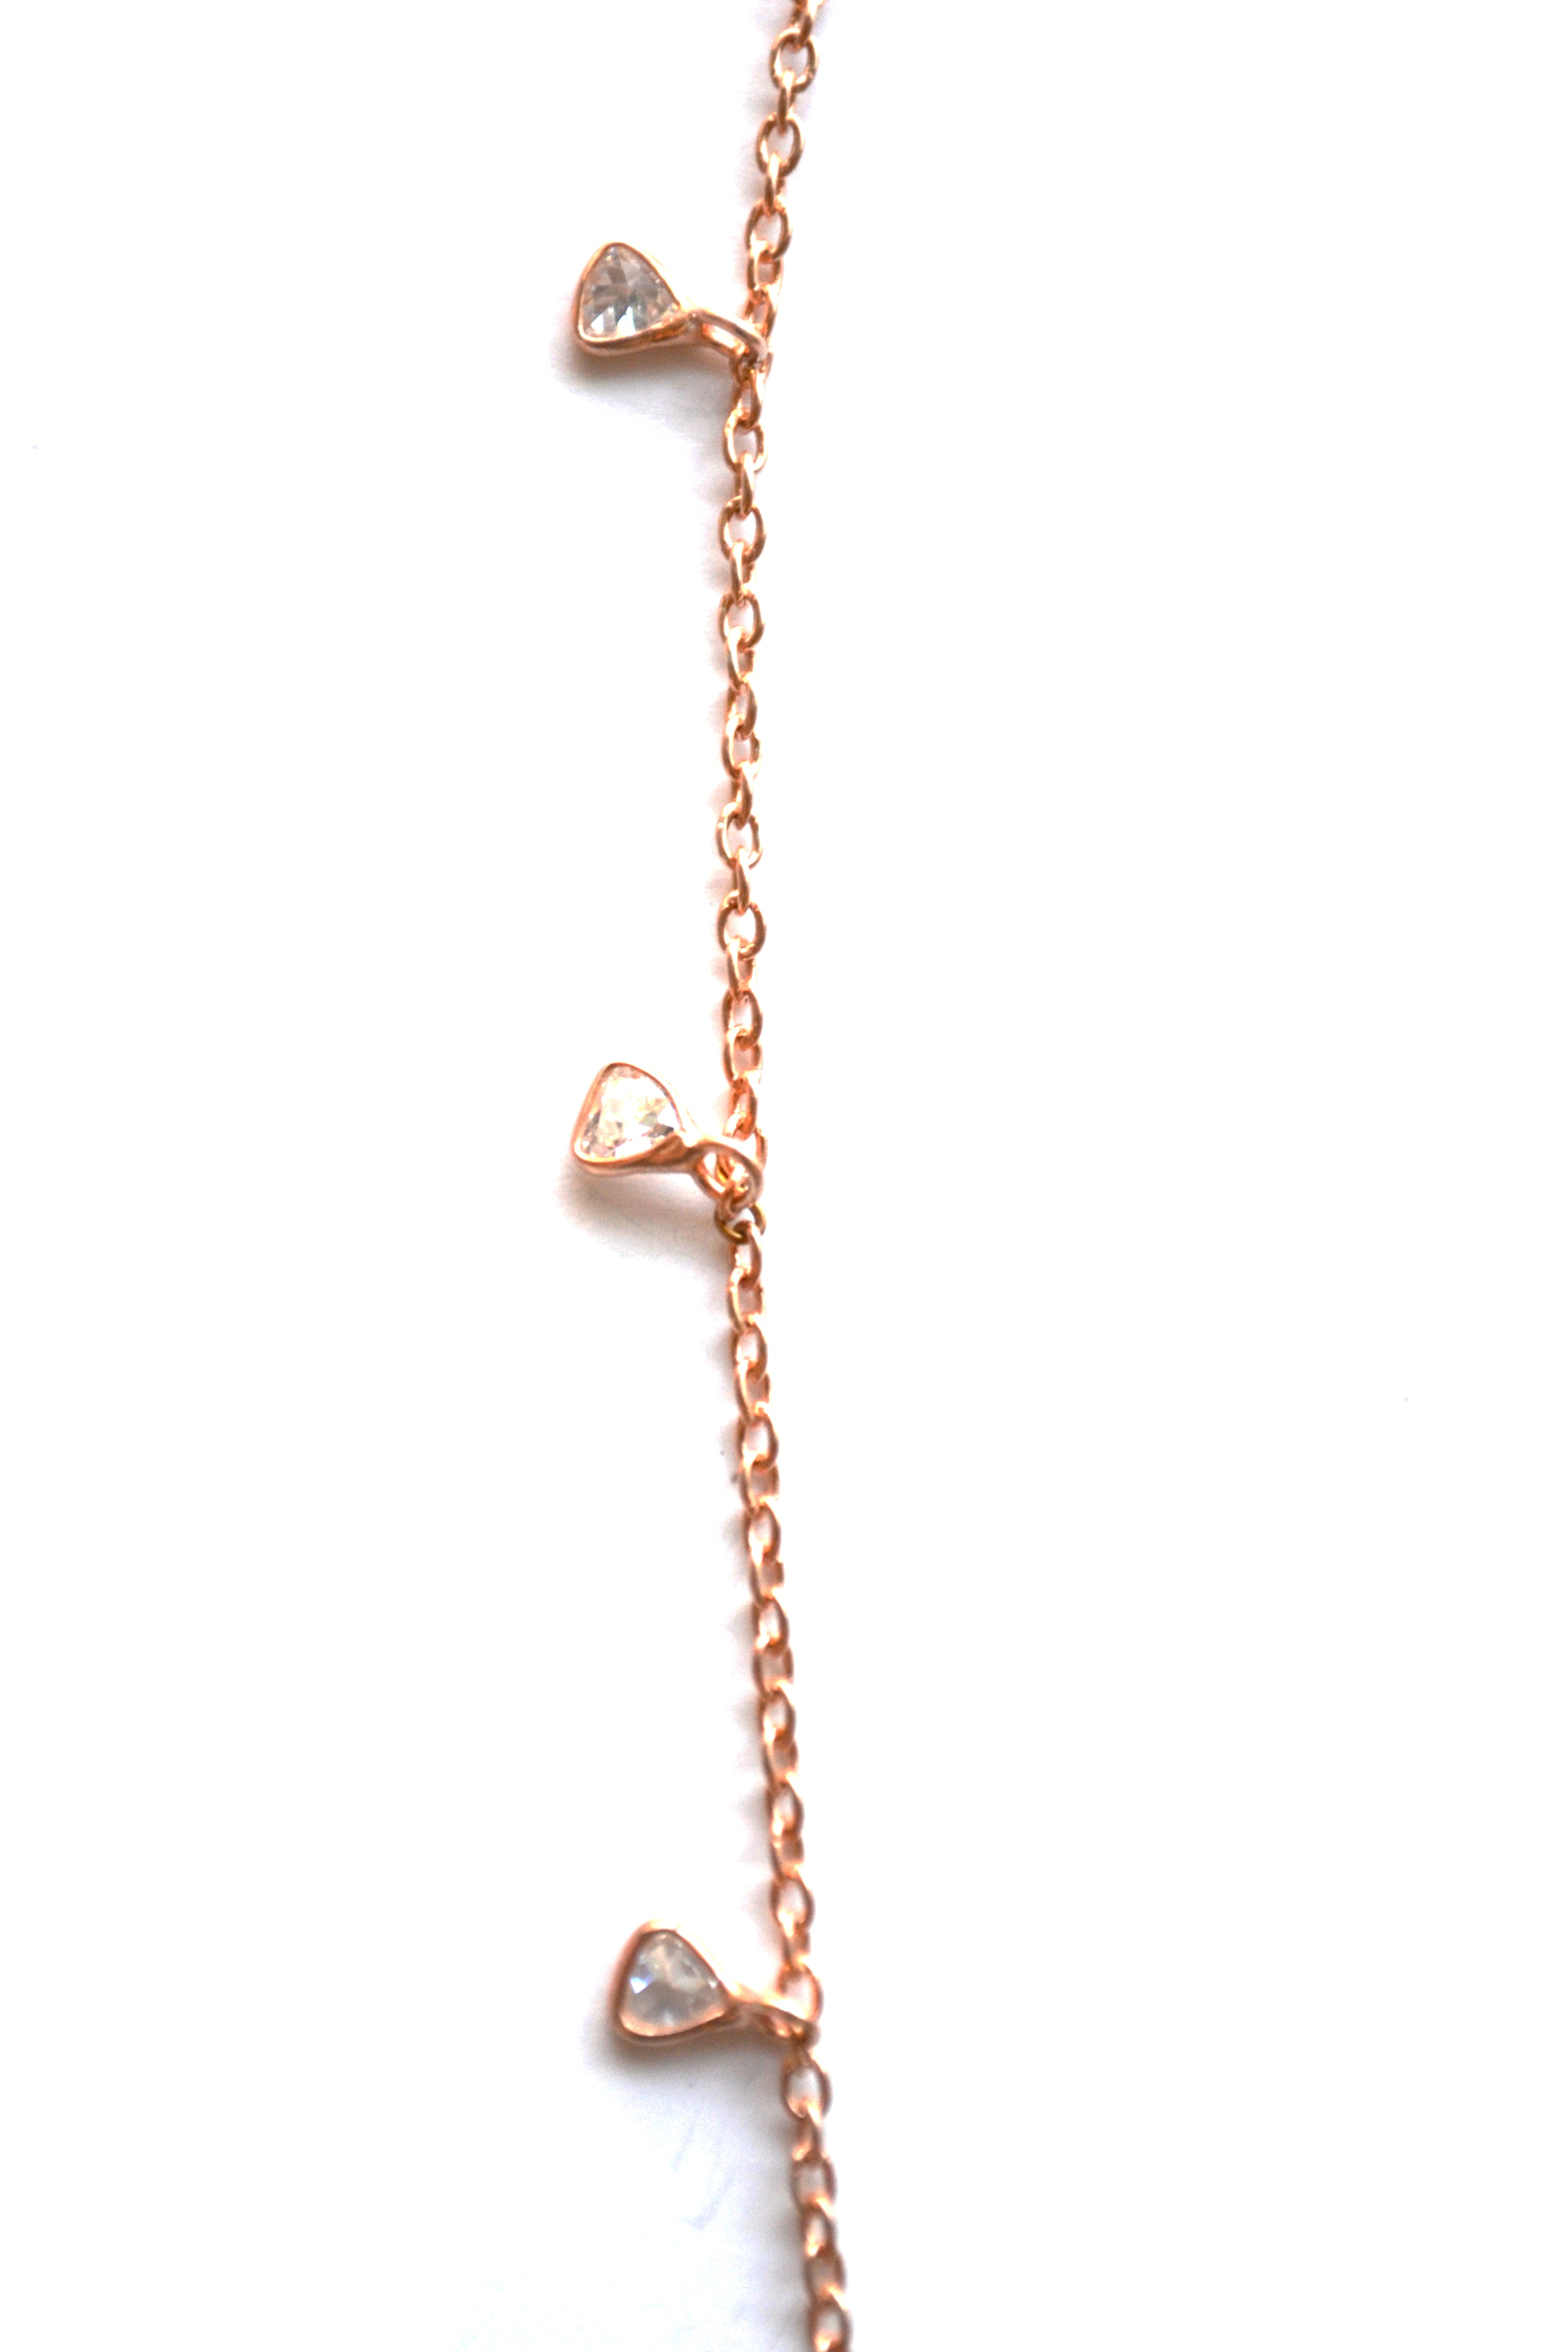 Rose Gold Celestial Diamond Necklace with a Moon Charm